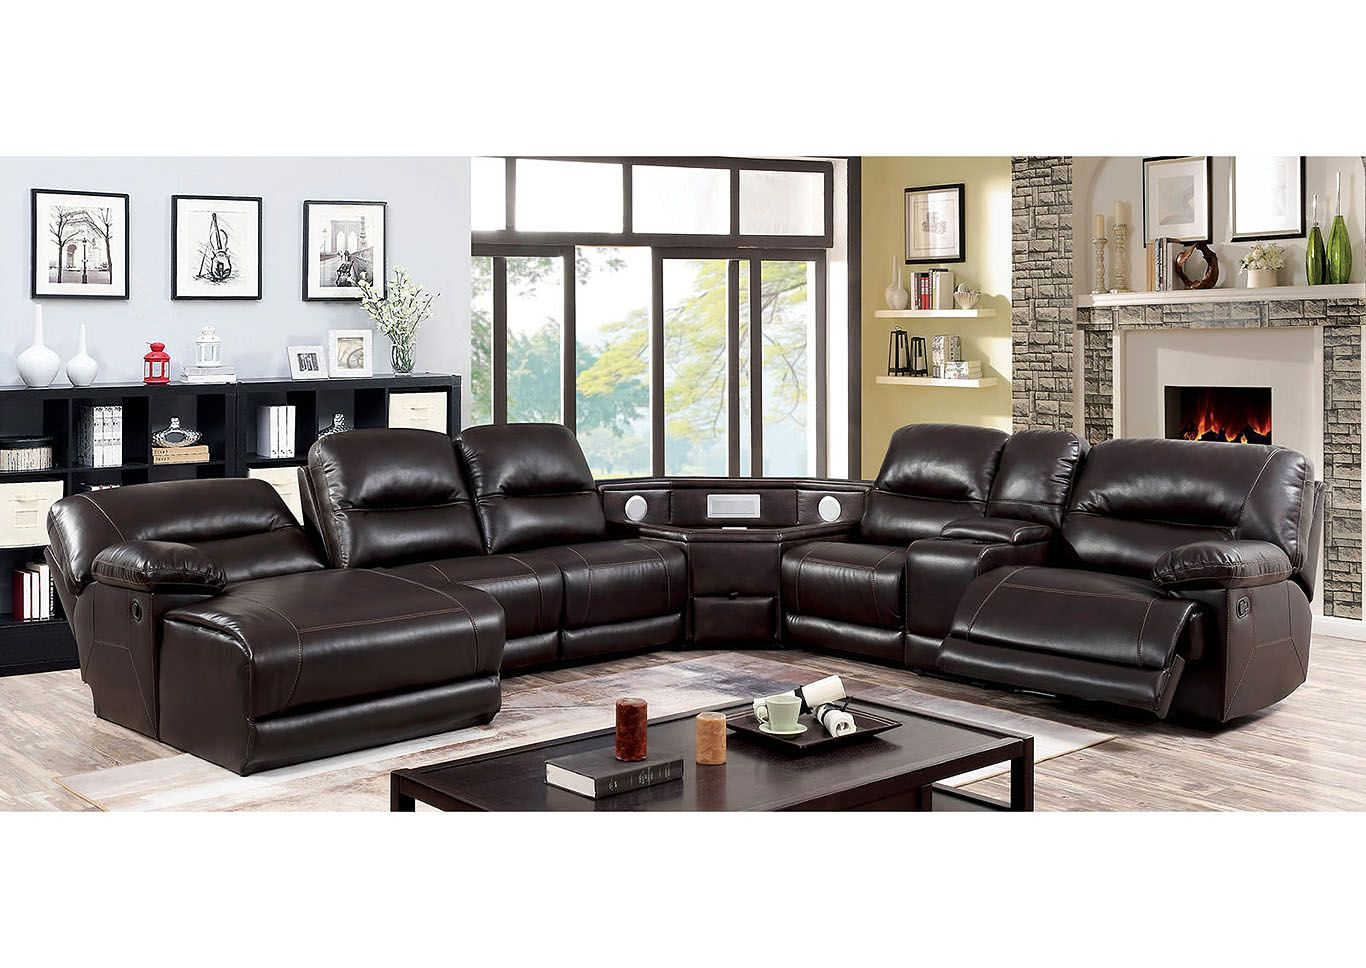 Glasgow Sectional W Corner Wedge W Usb Speakers Furniture Of America Sectional Sofa With Recliner Furniture Of America Reclining Sectional